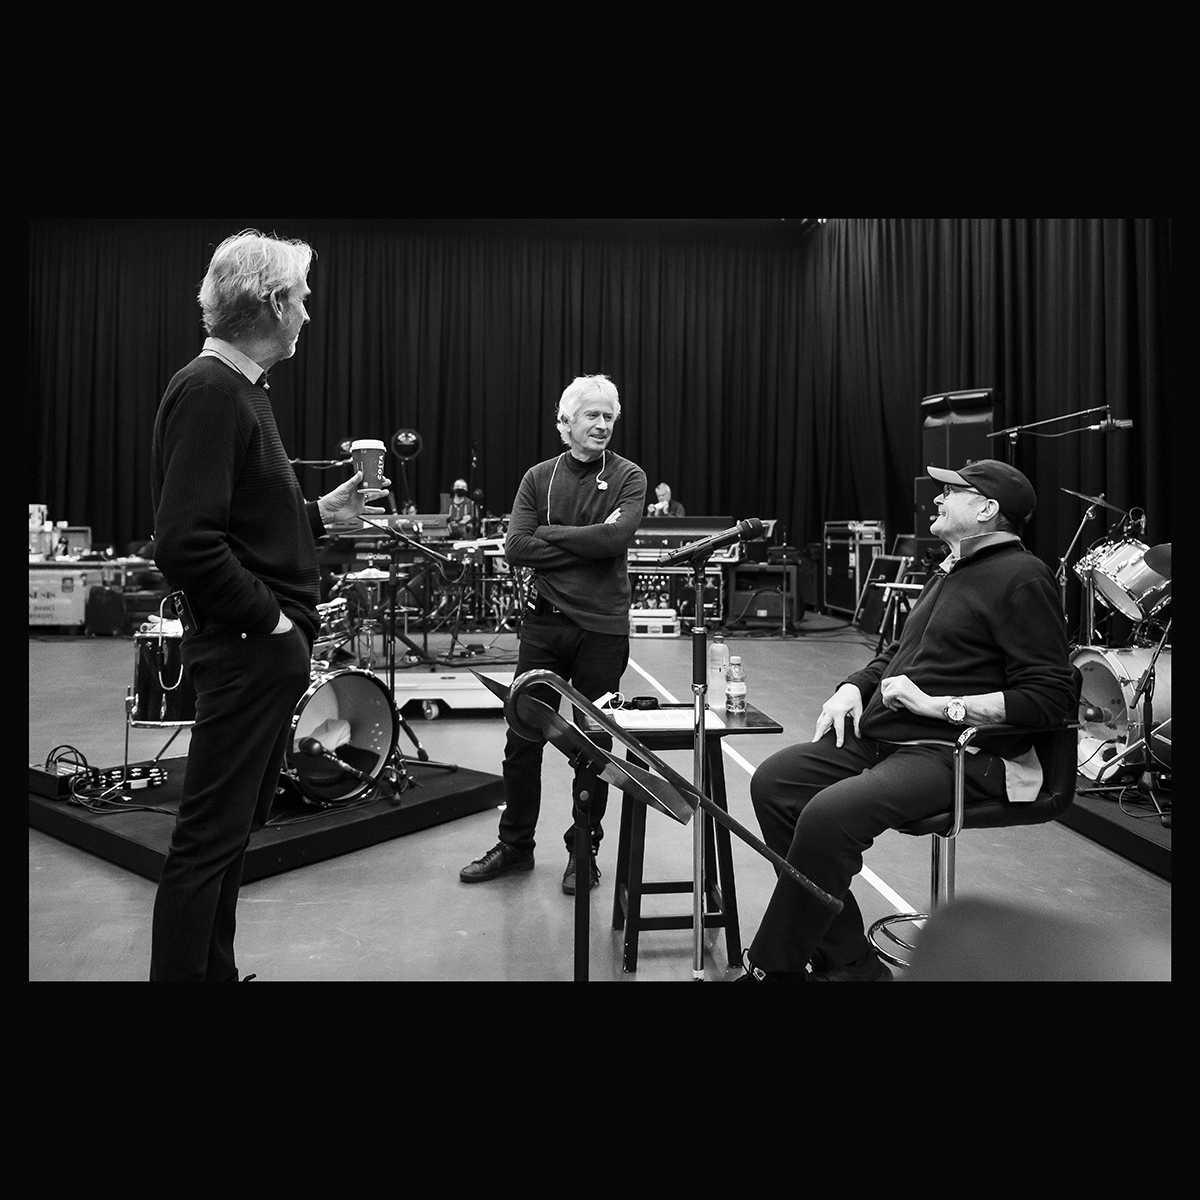 Genesis rehearsal studio photographs, Phil Collins, Mike Rutherford , Tony Banks - Photo by Will Ireland